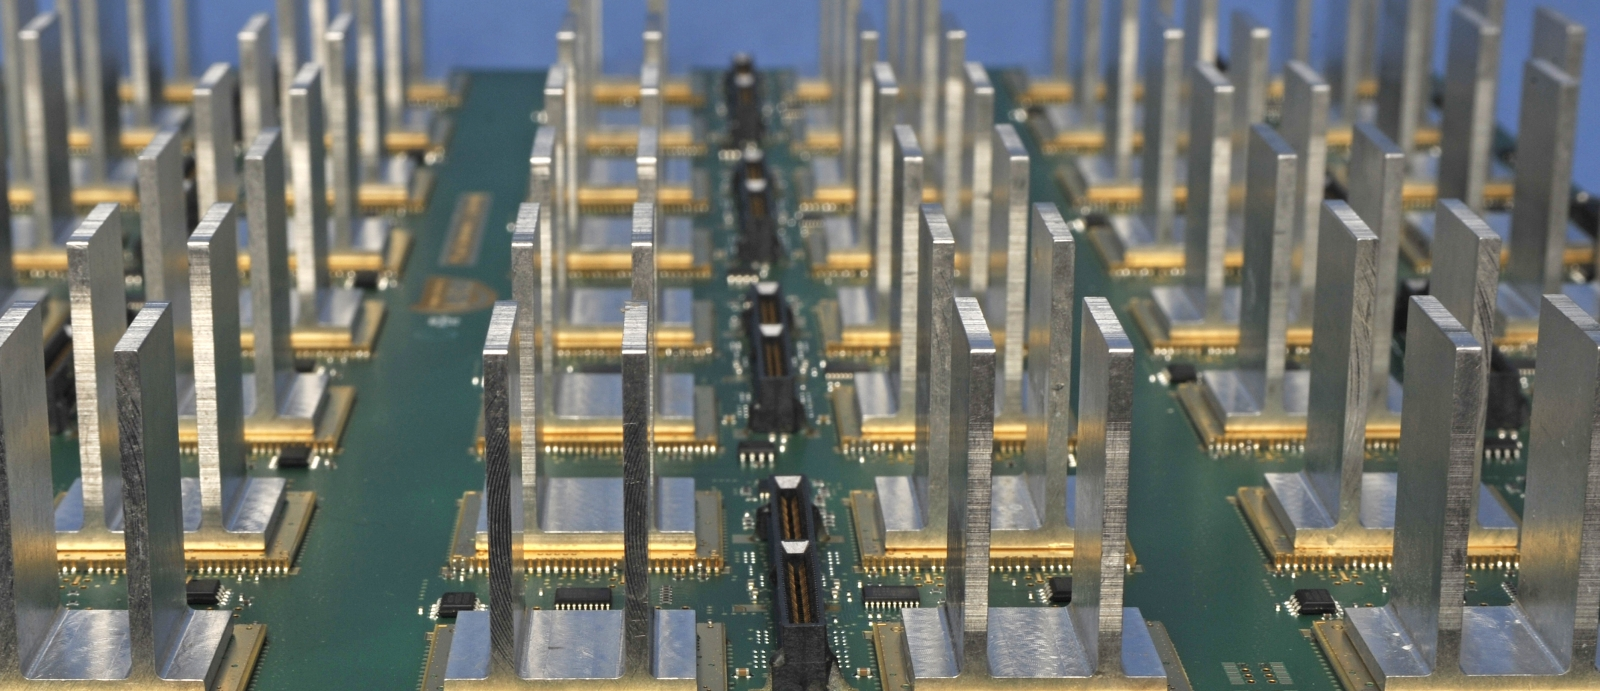 Multifunction Phased Array Radar antenna panel backplane.